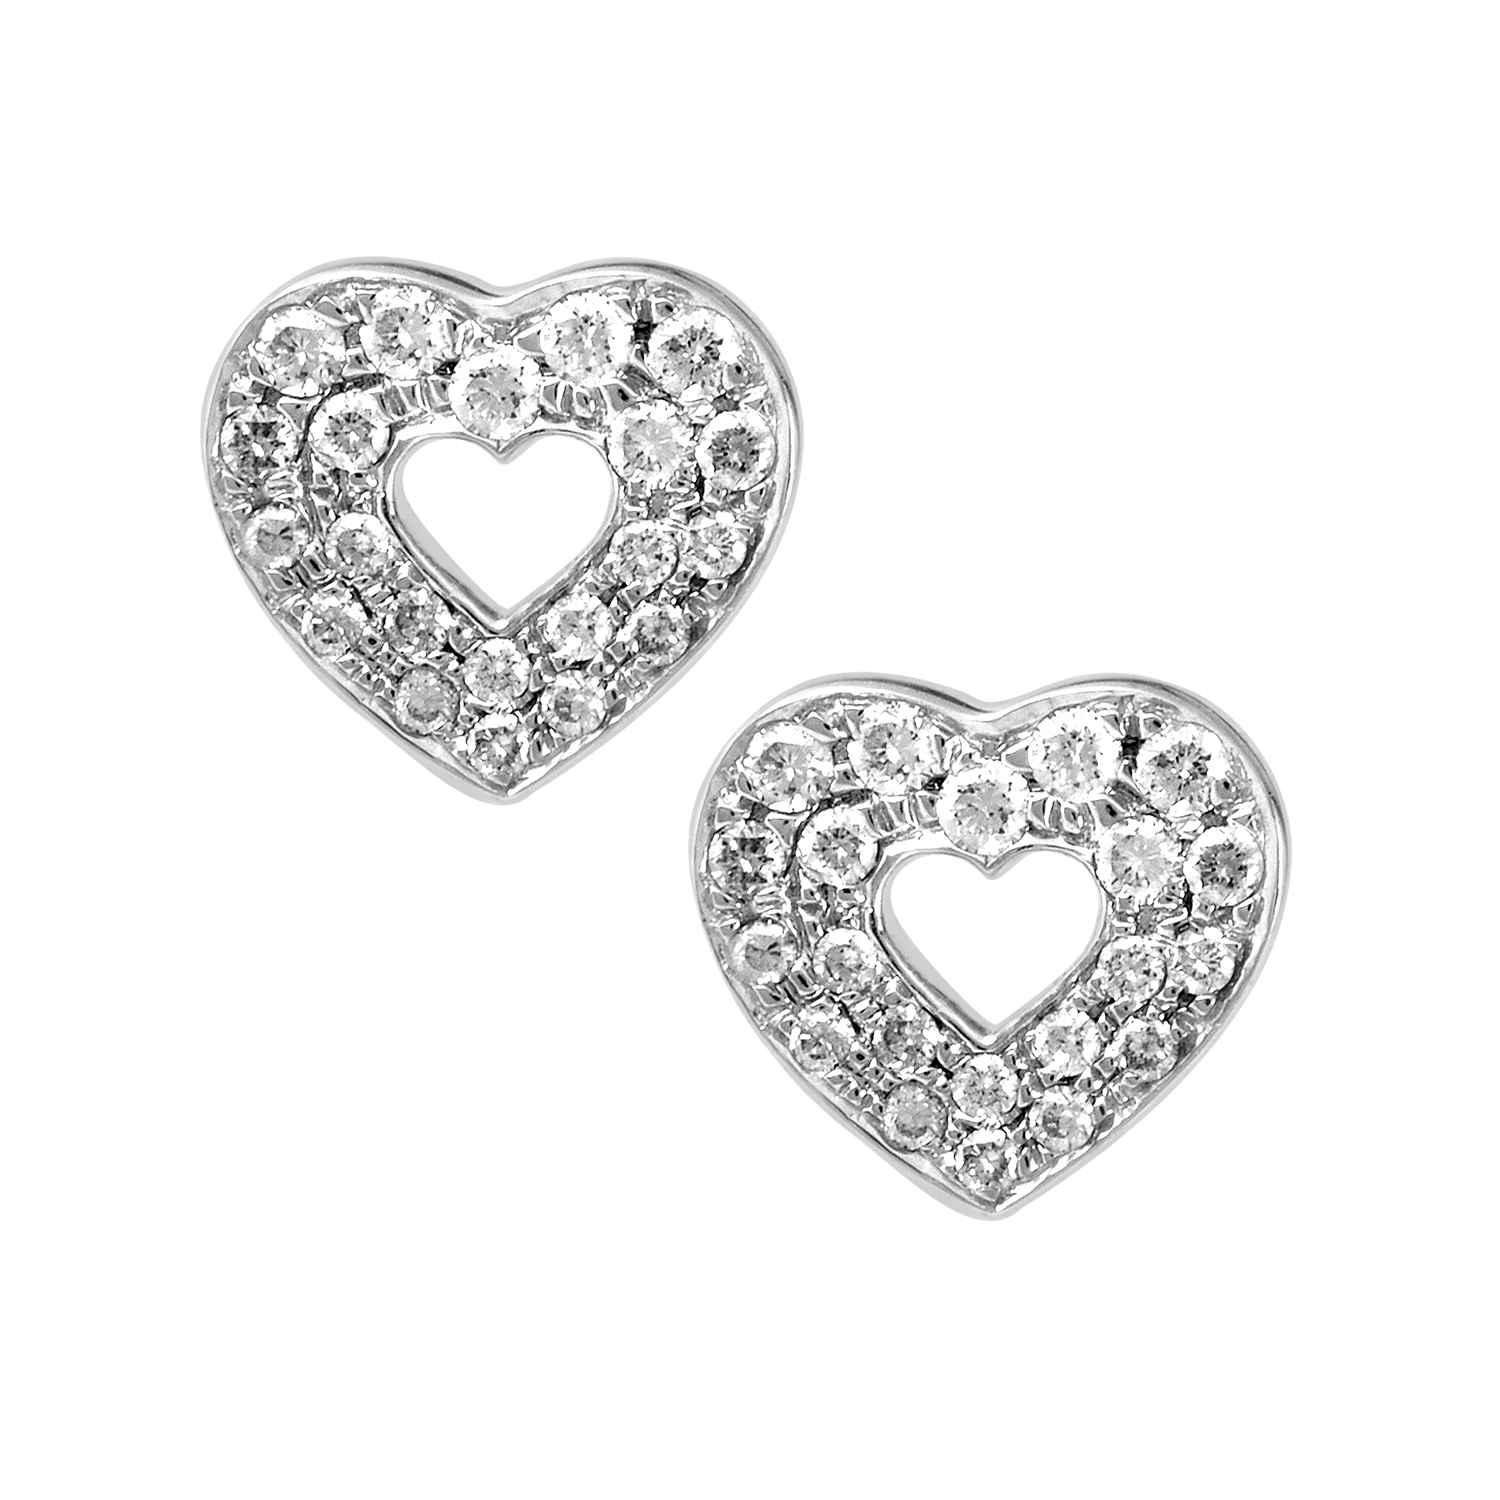 18K White Gold Diamond Pave Heart Stud Earrings PPH0108